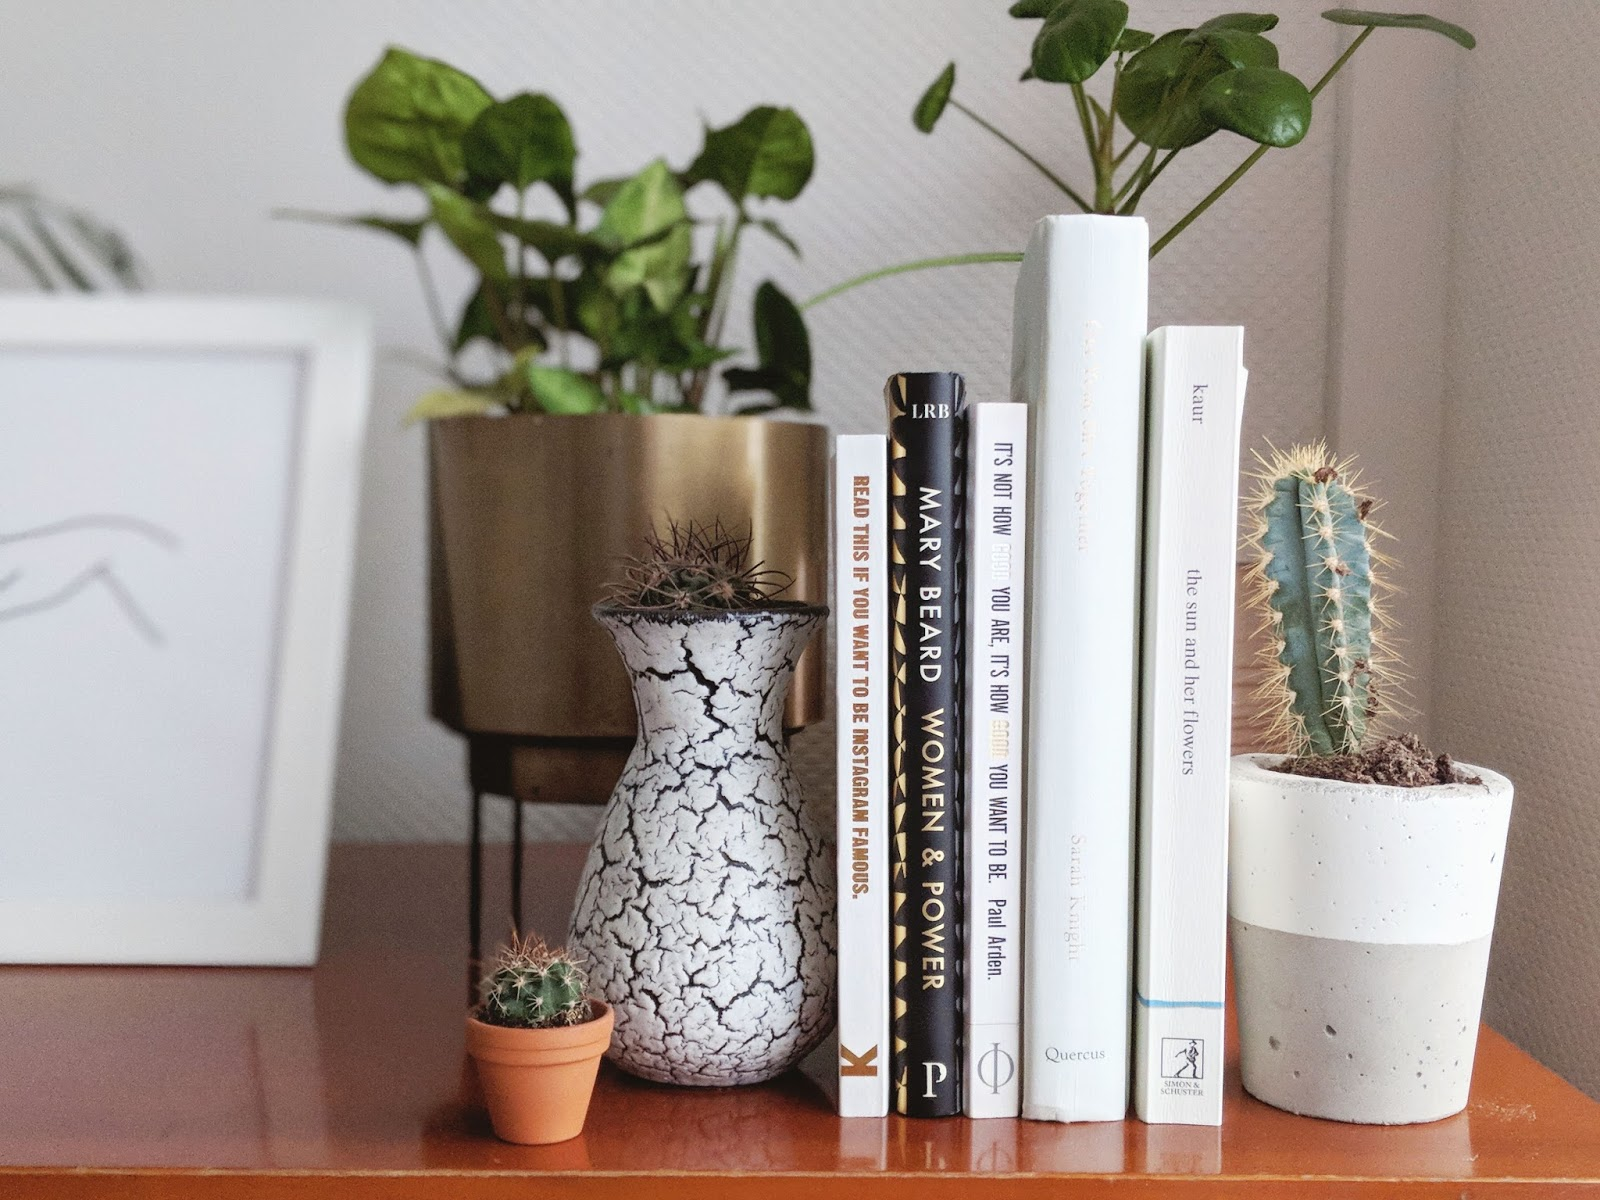 Career and business books